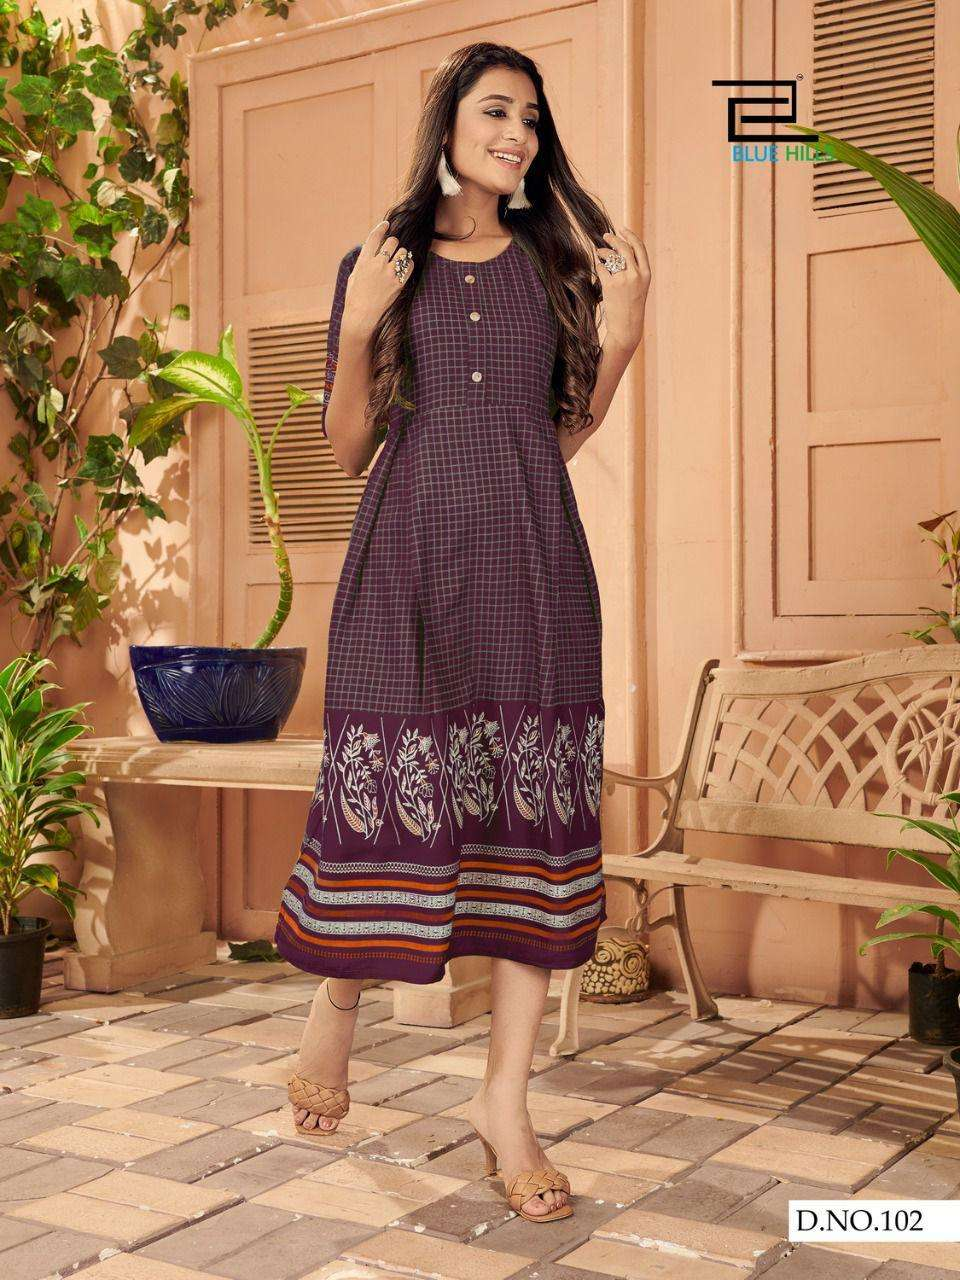 Blue Hills Kiss Miss 3 rayong designer one pc kurtis style at wholesale rate